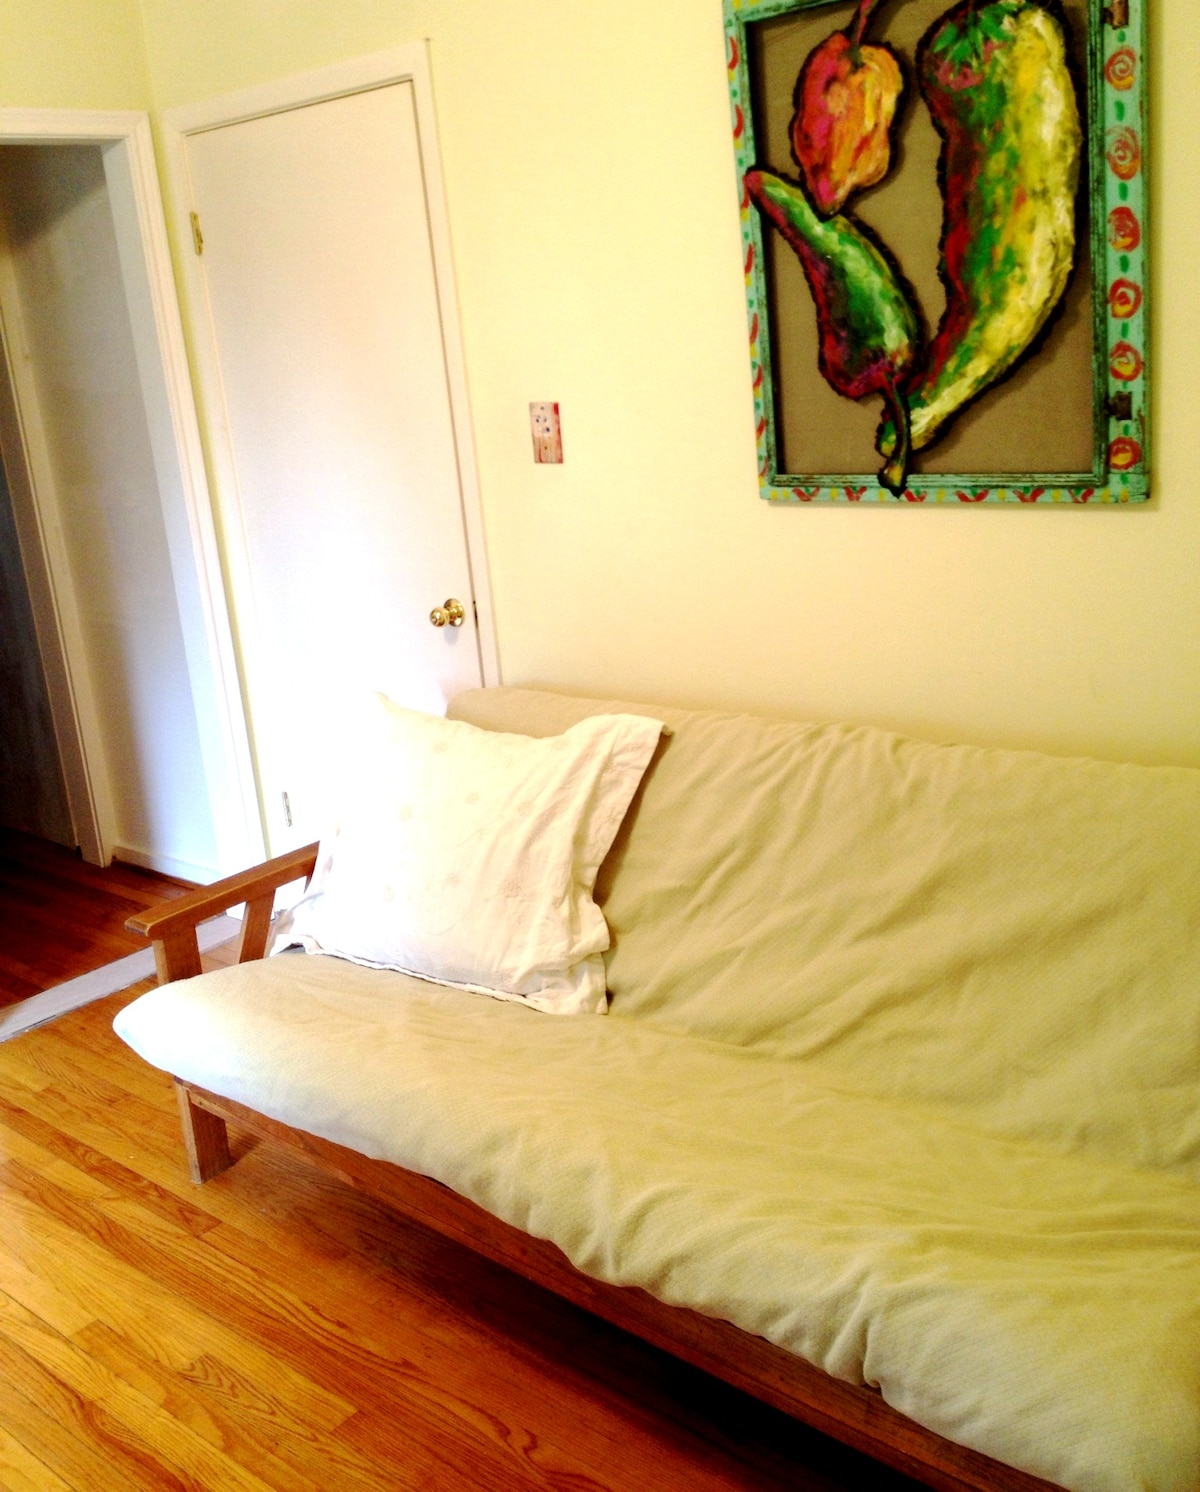 excellent sleeping futon, solid slatted wood base with no bumps and no metal rickety rack